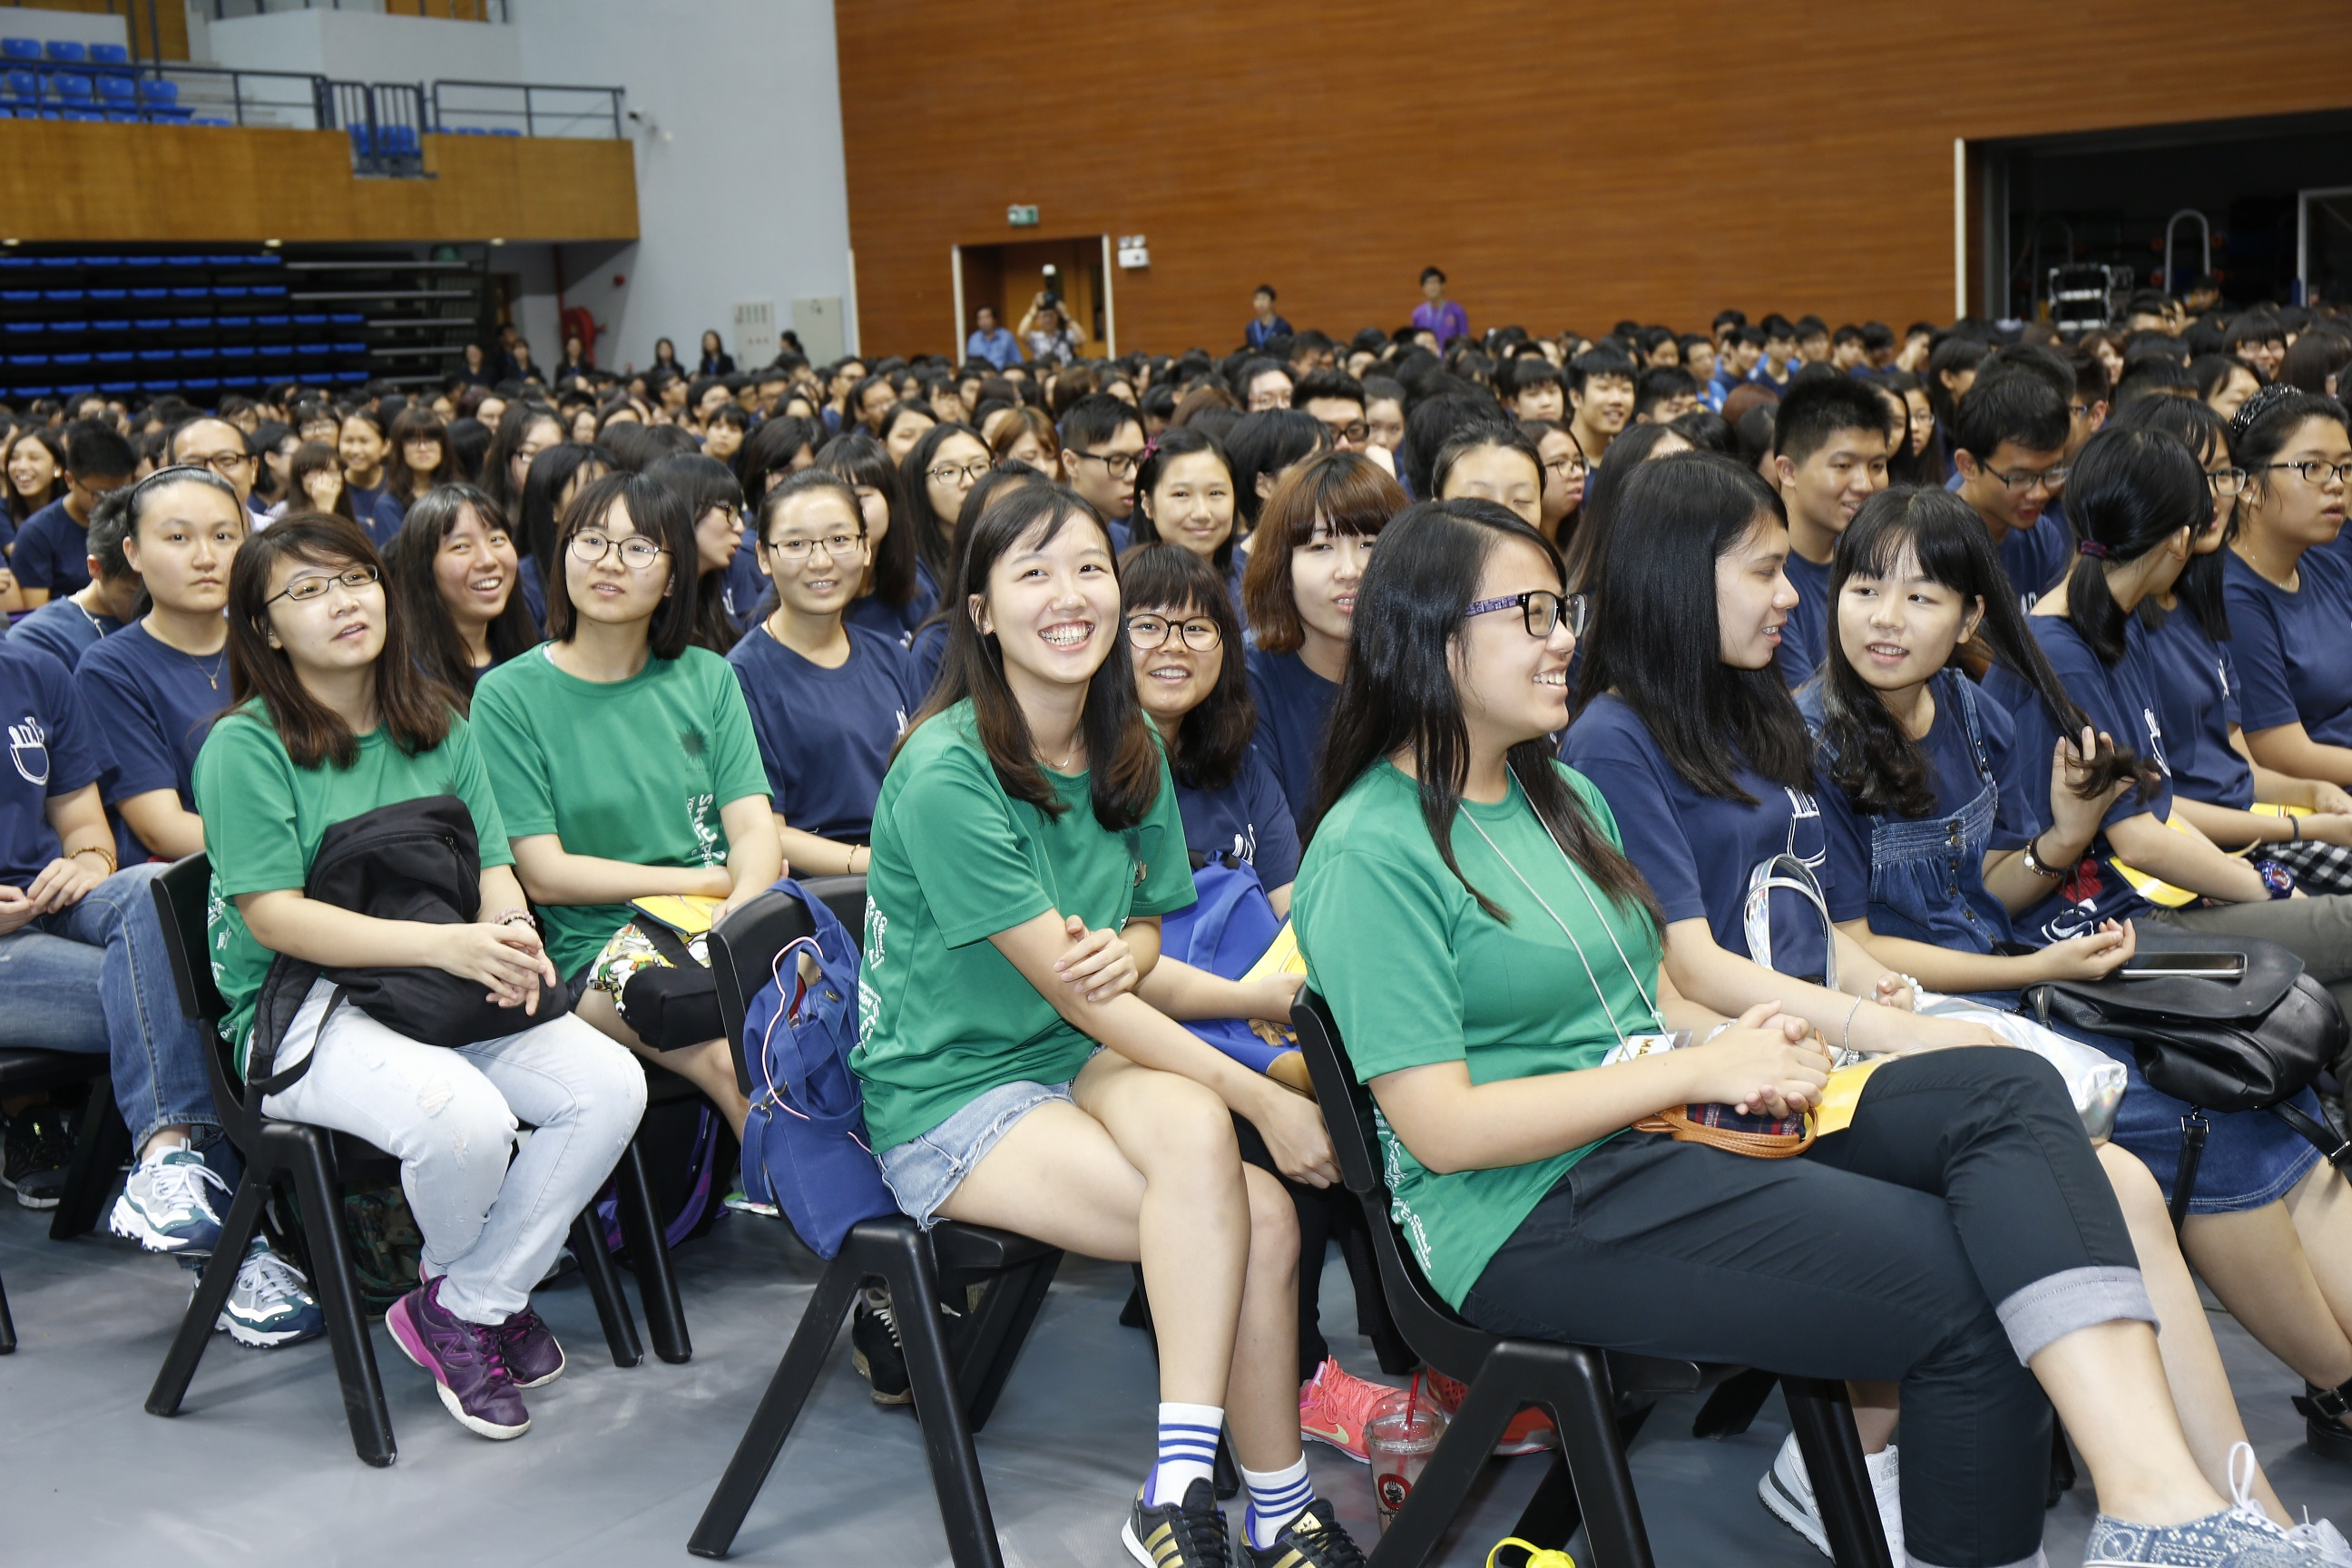 The new students are excited about the four college years ahead of them